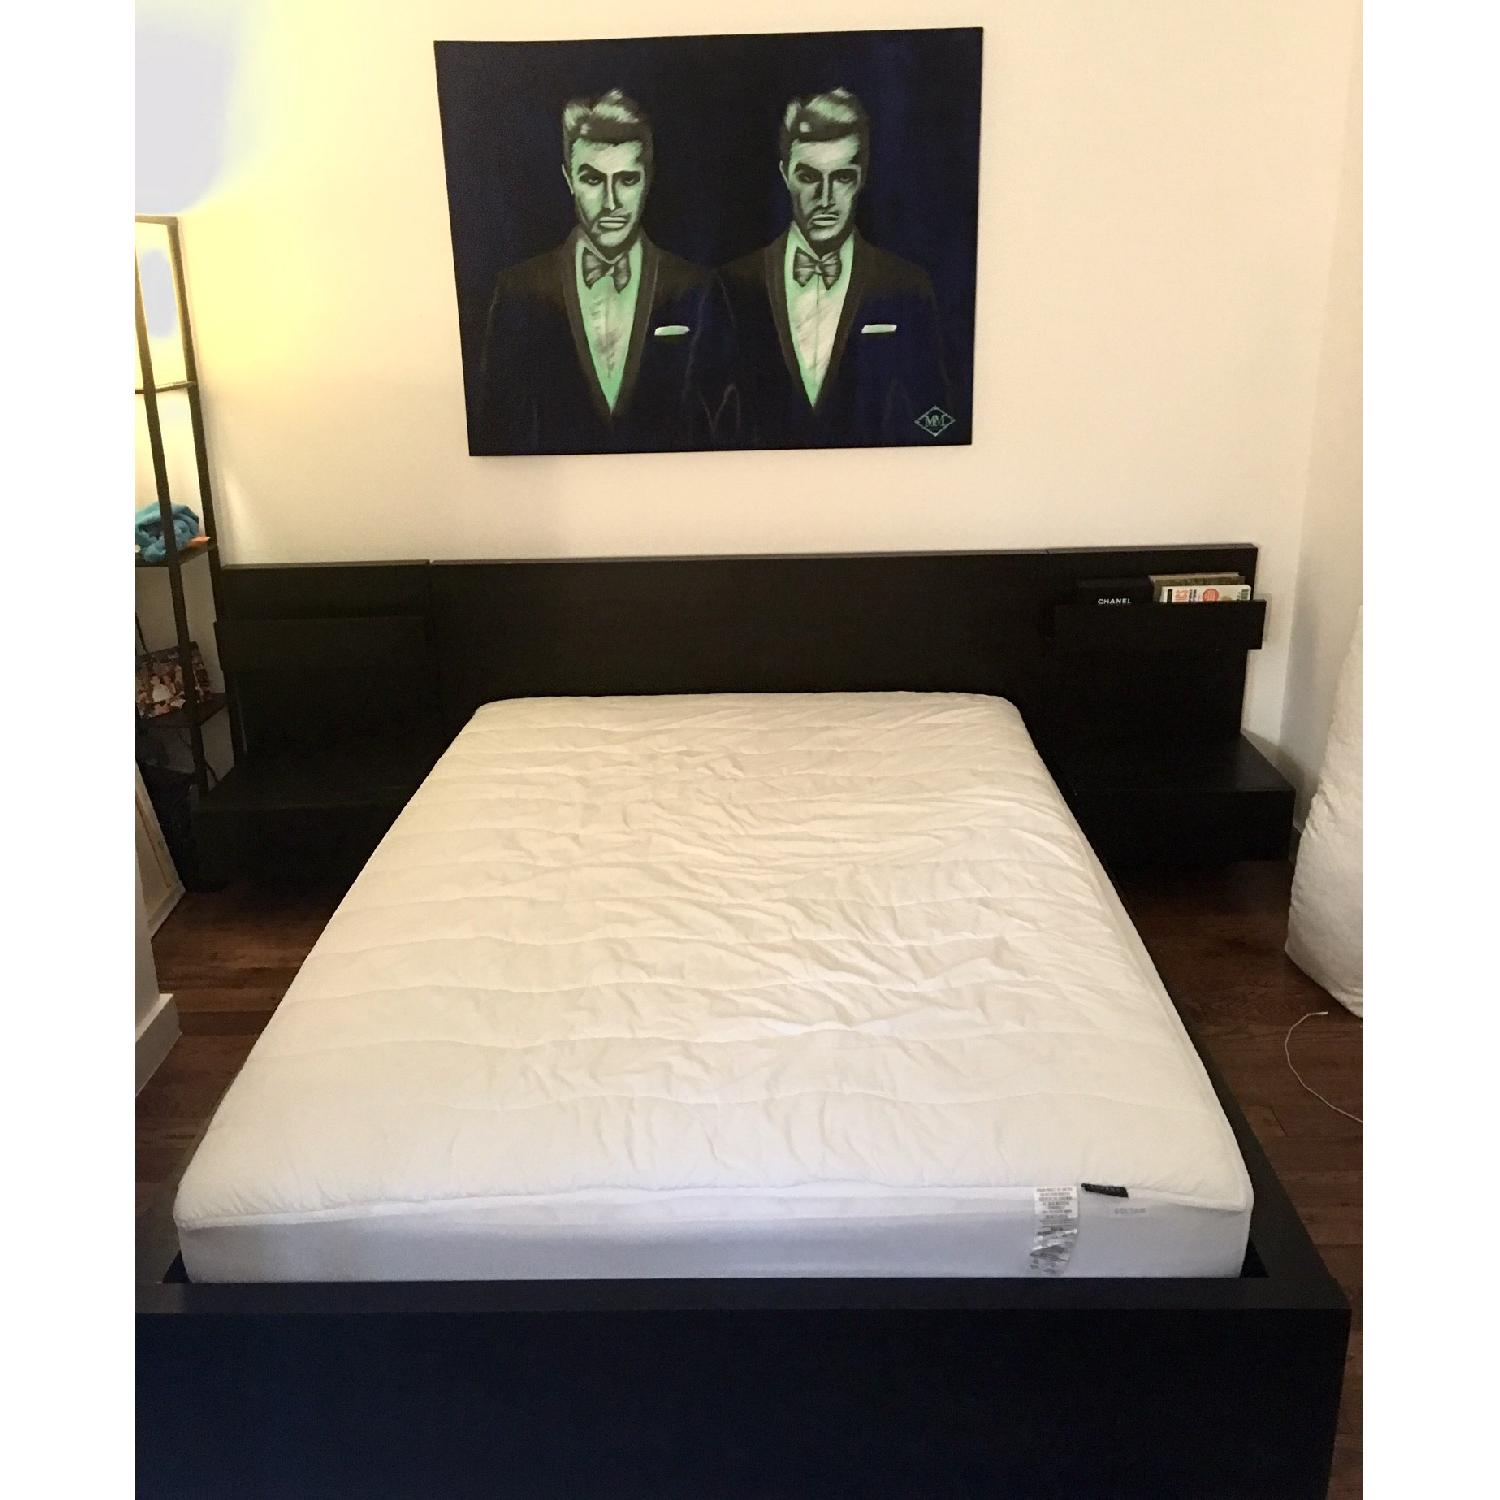 Ikea Malm Black Full Size Bed Frame w/ 2 Nightstands - image-5